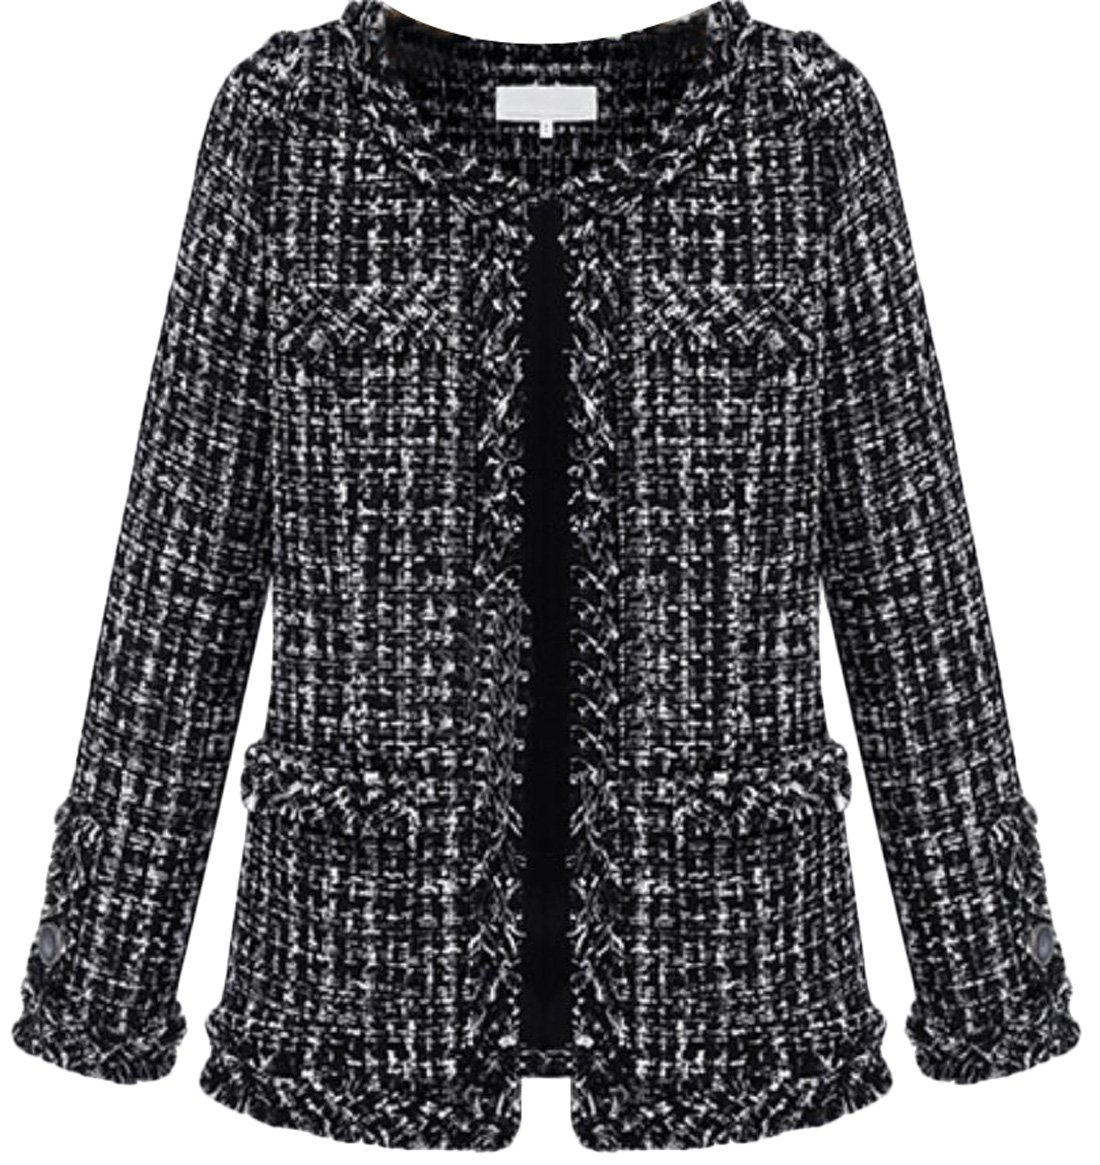 YUNY Womens Fashion Tweed Wool-Blend Short Coat black M